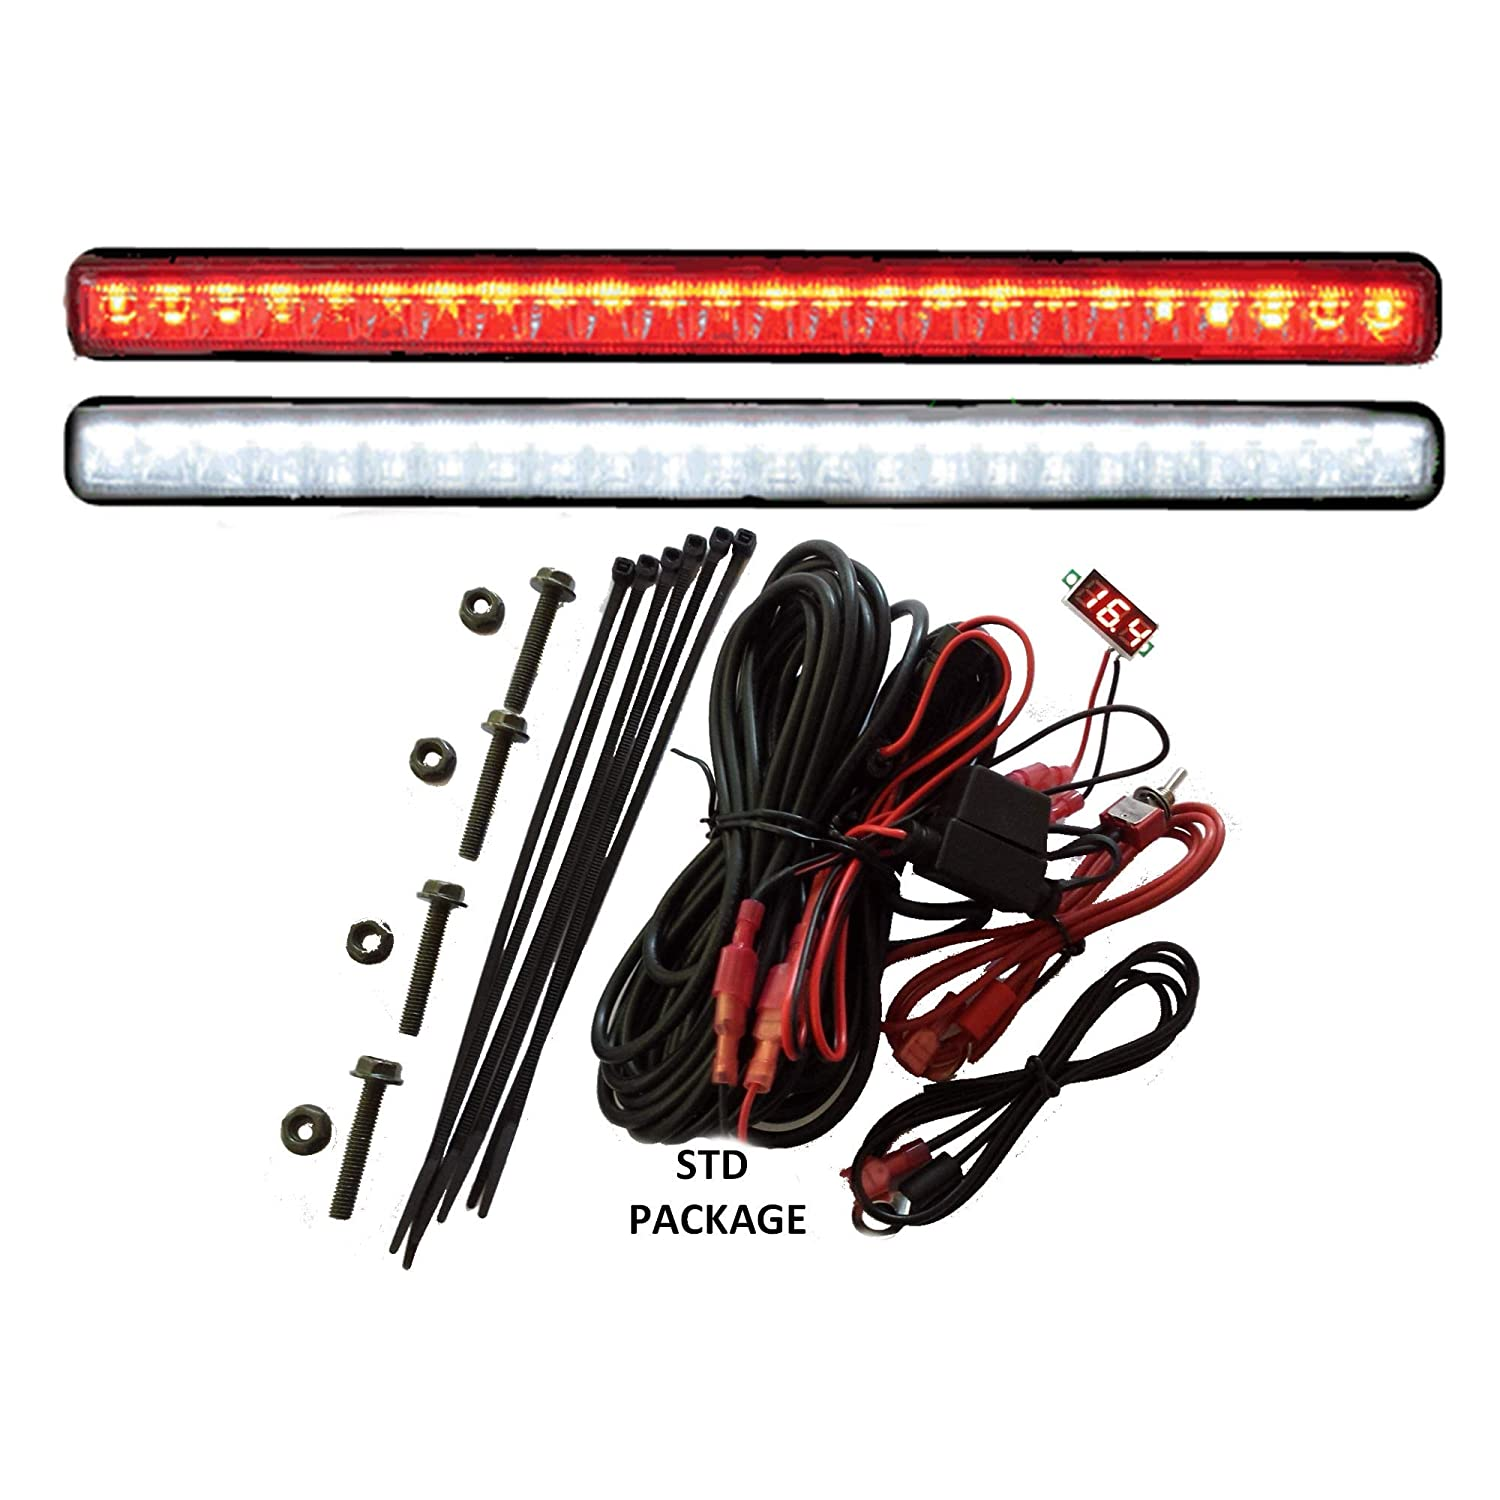 Tecscan Golf Cart Led Light Kit Liteseasy Standard W Yamaha F350 Command Link Wiring Diagram Built In Meter Accessories Sports Outdoors